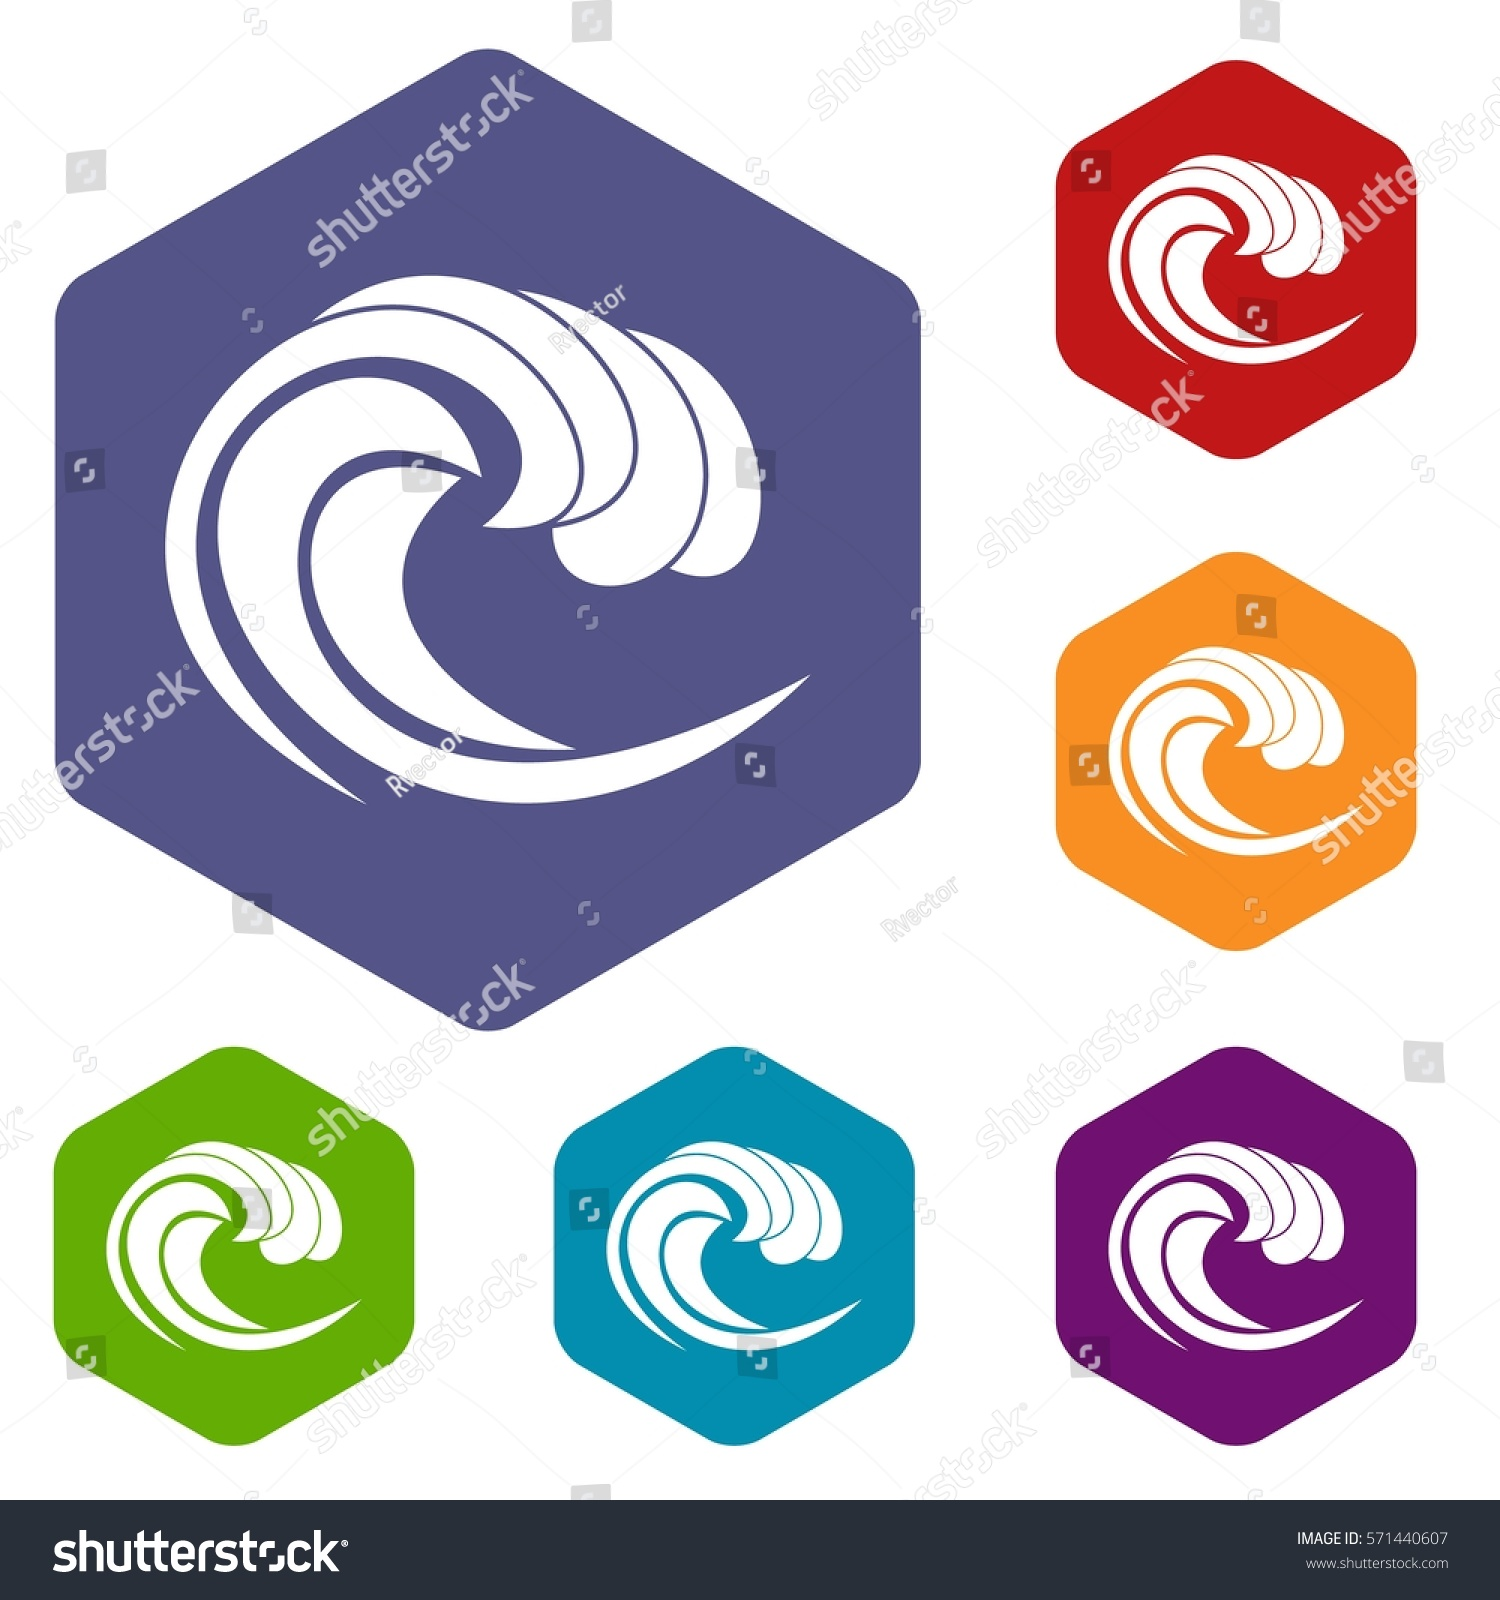 Wave sea tide icons set rhombus stock vector 571440607 shutterstock wave of sea tide icons set rhombus in different colors isolated on white background biocorpaavc